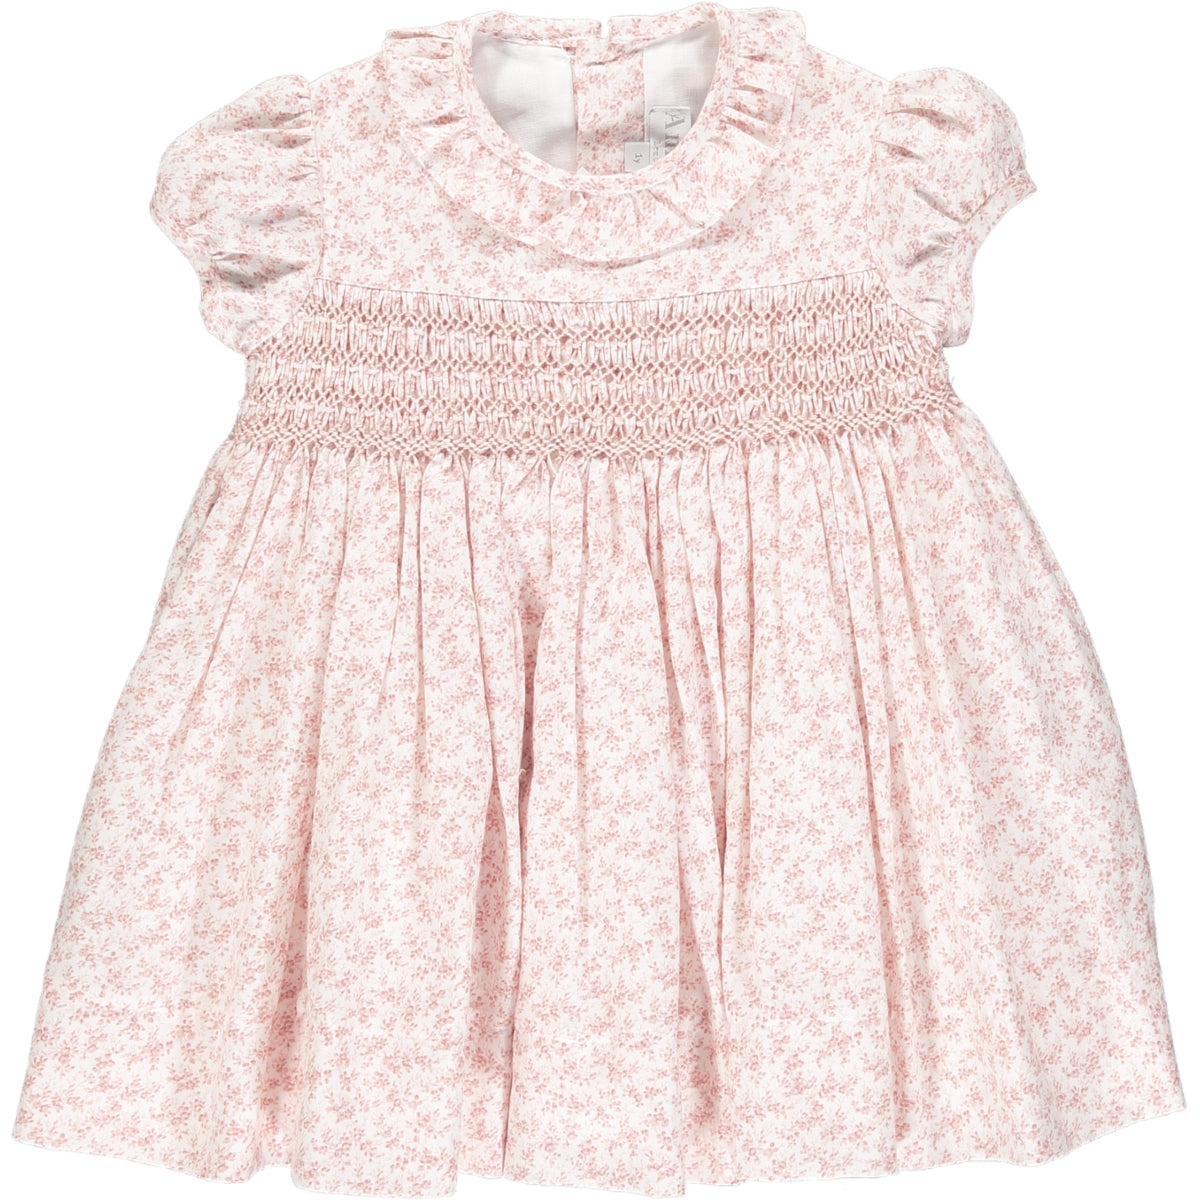 Moohren Dress Dusty Pink Minifloral